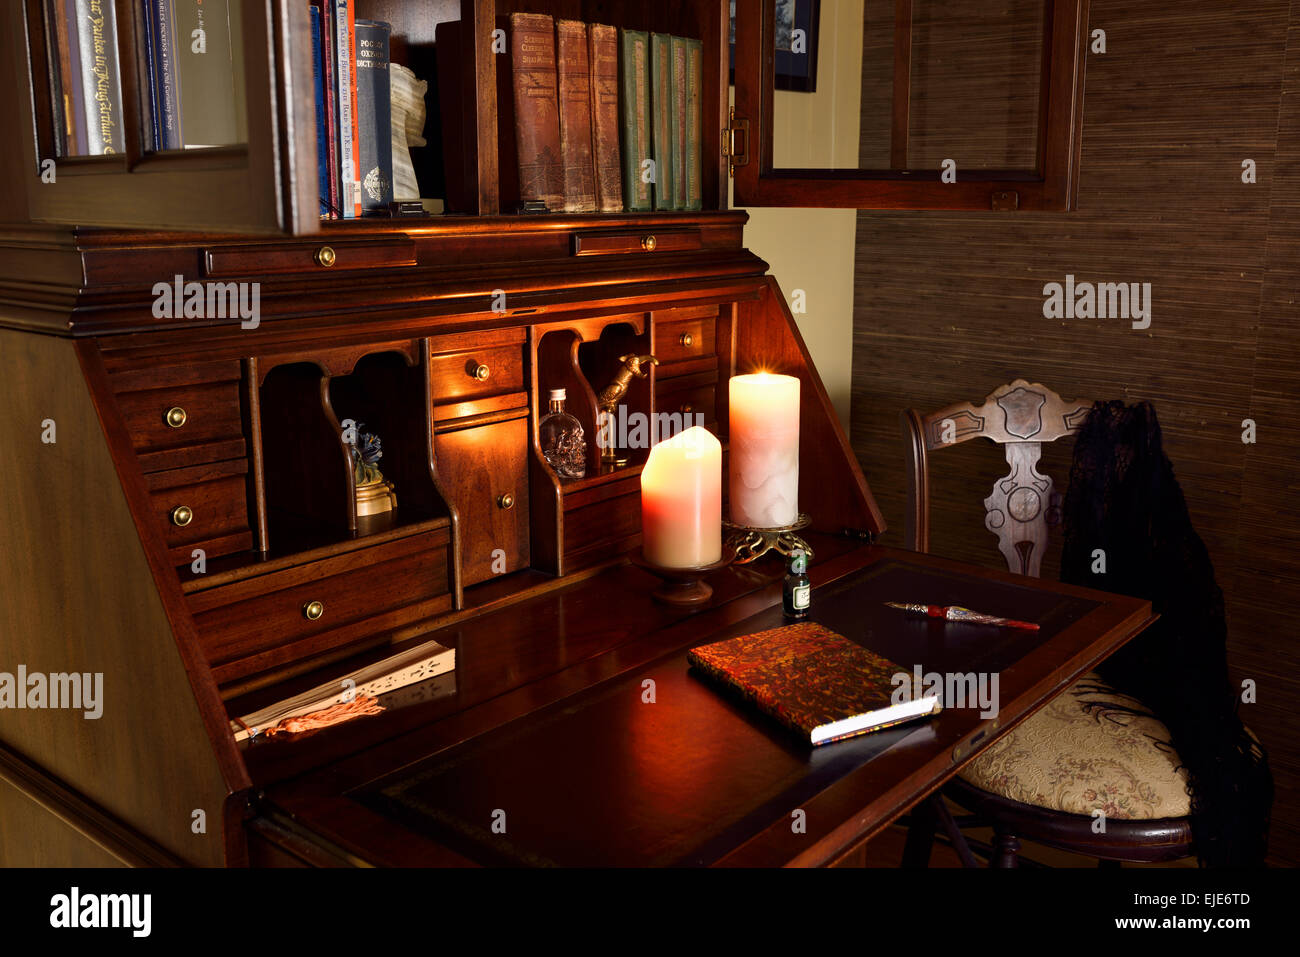 Classic wood secretary writing desk in dark room with candles and chair - Stock Image